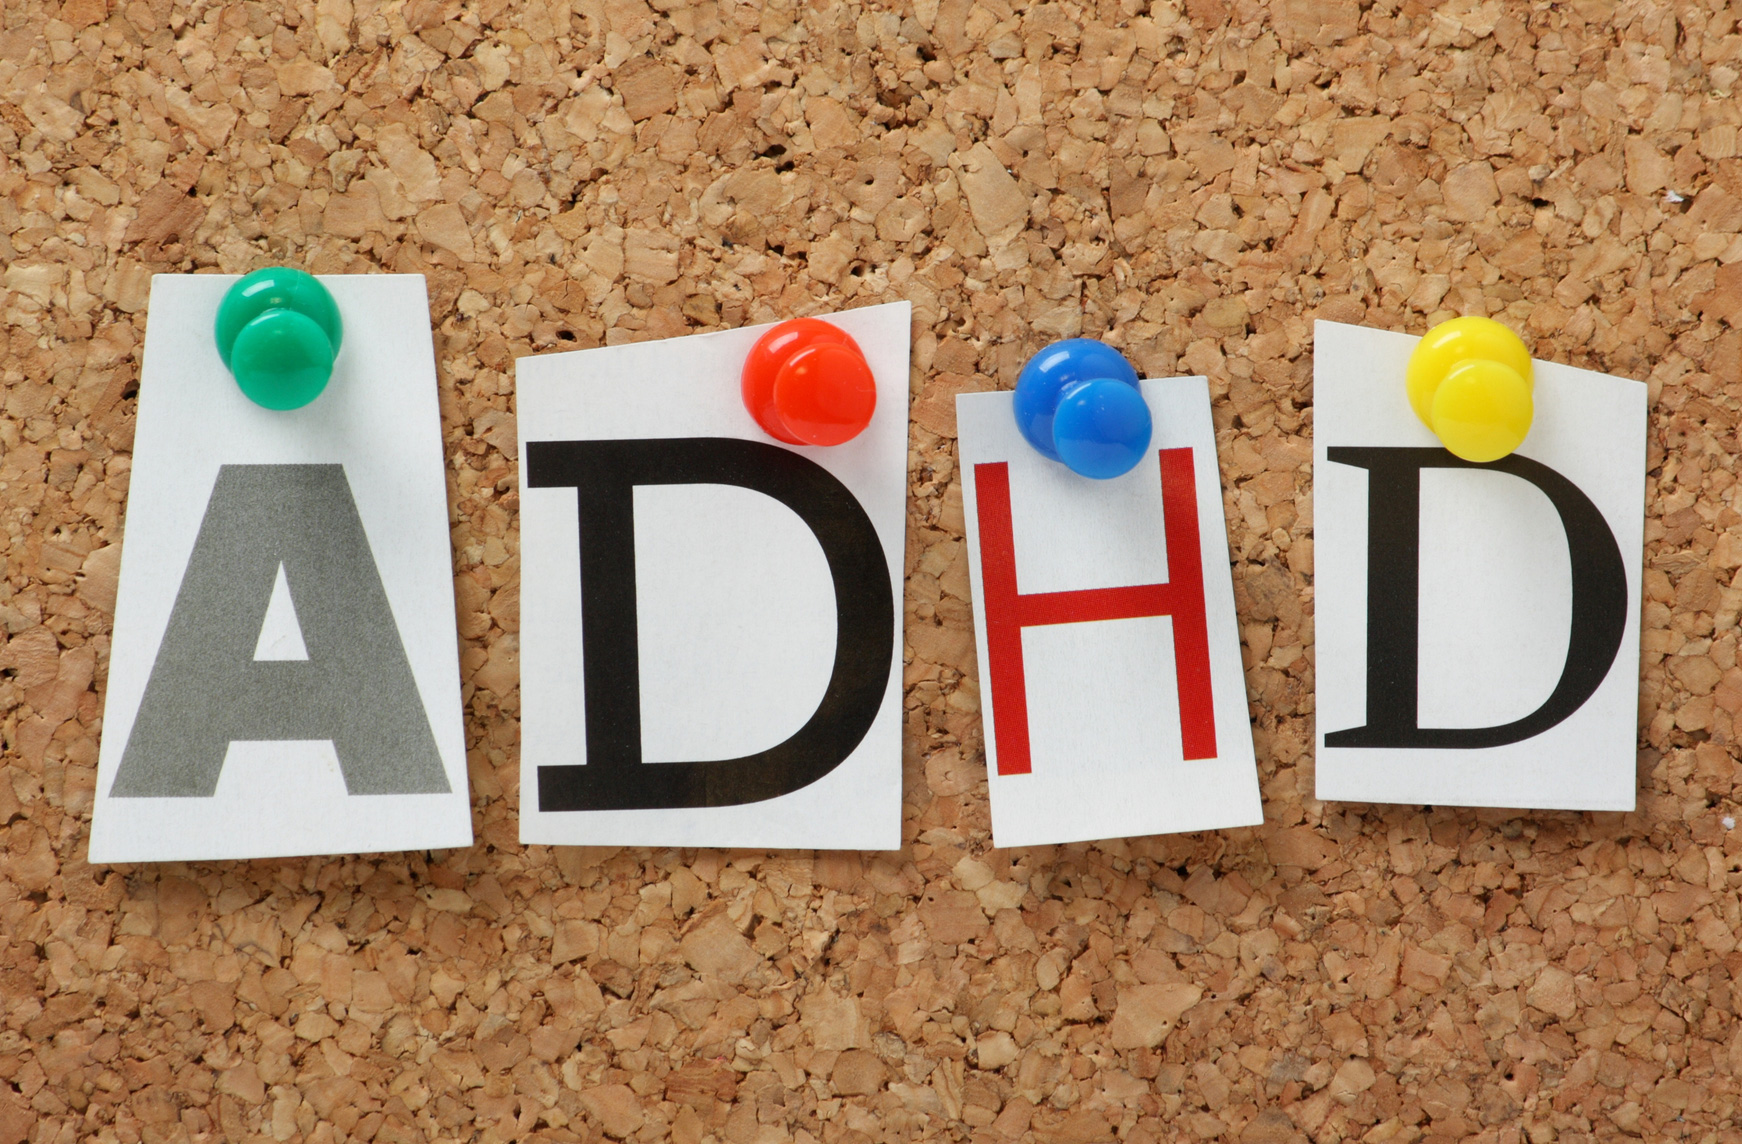 attention deficit disorder adhd on corkboard image namaste family services